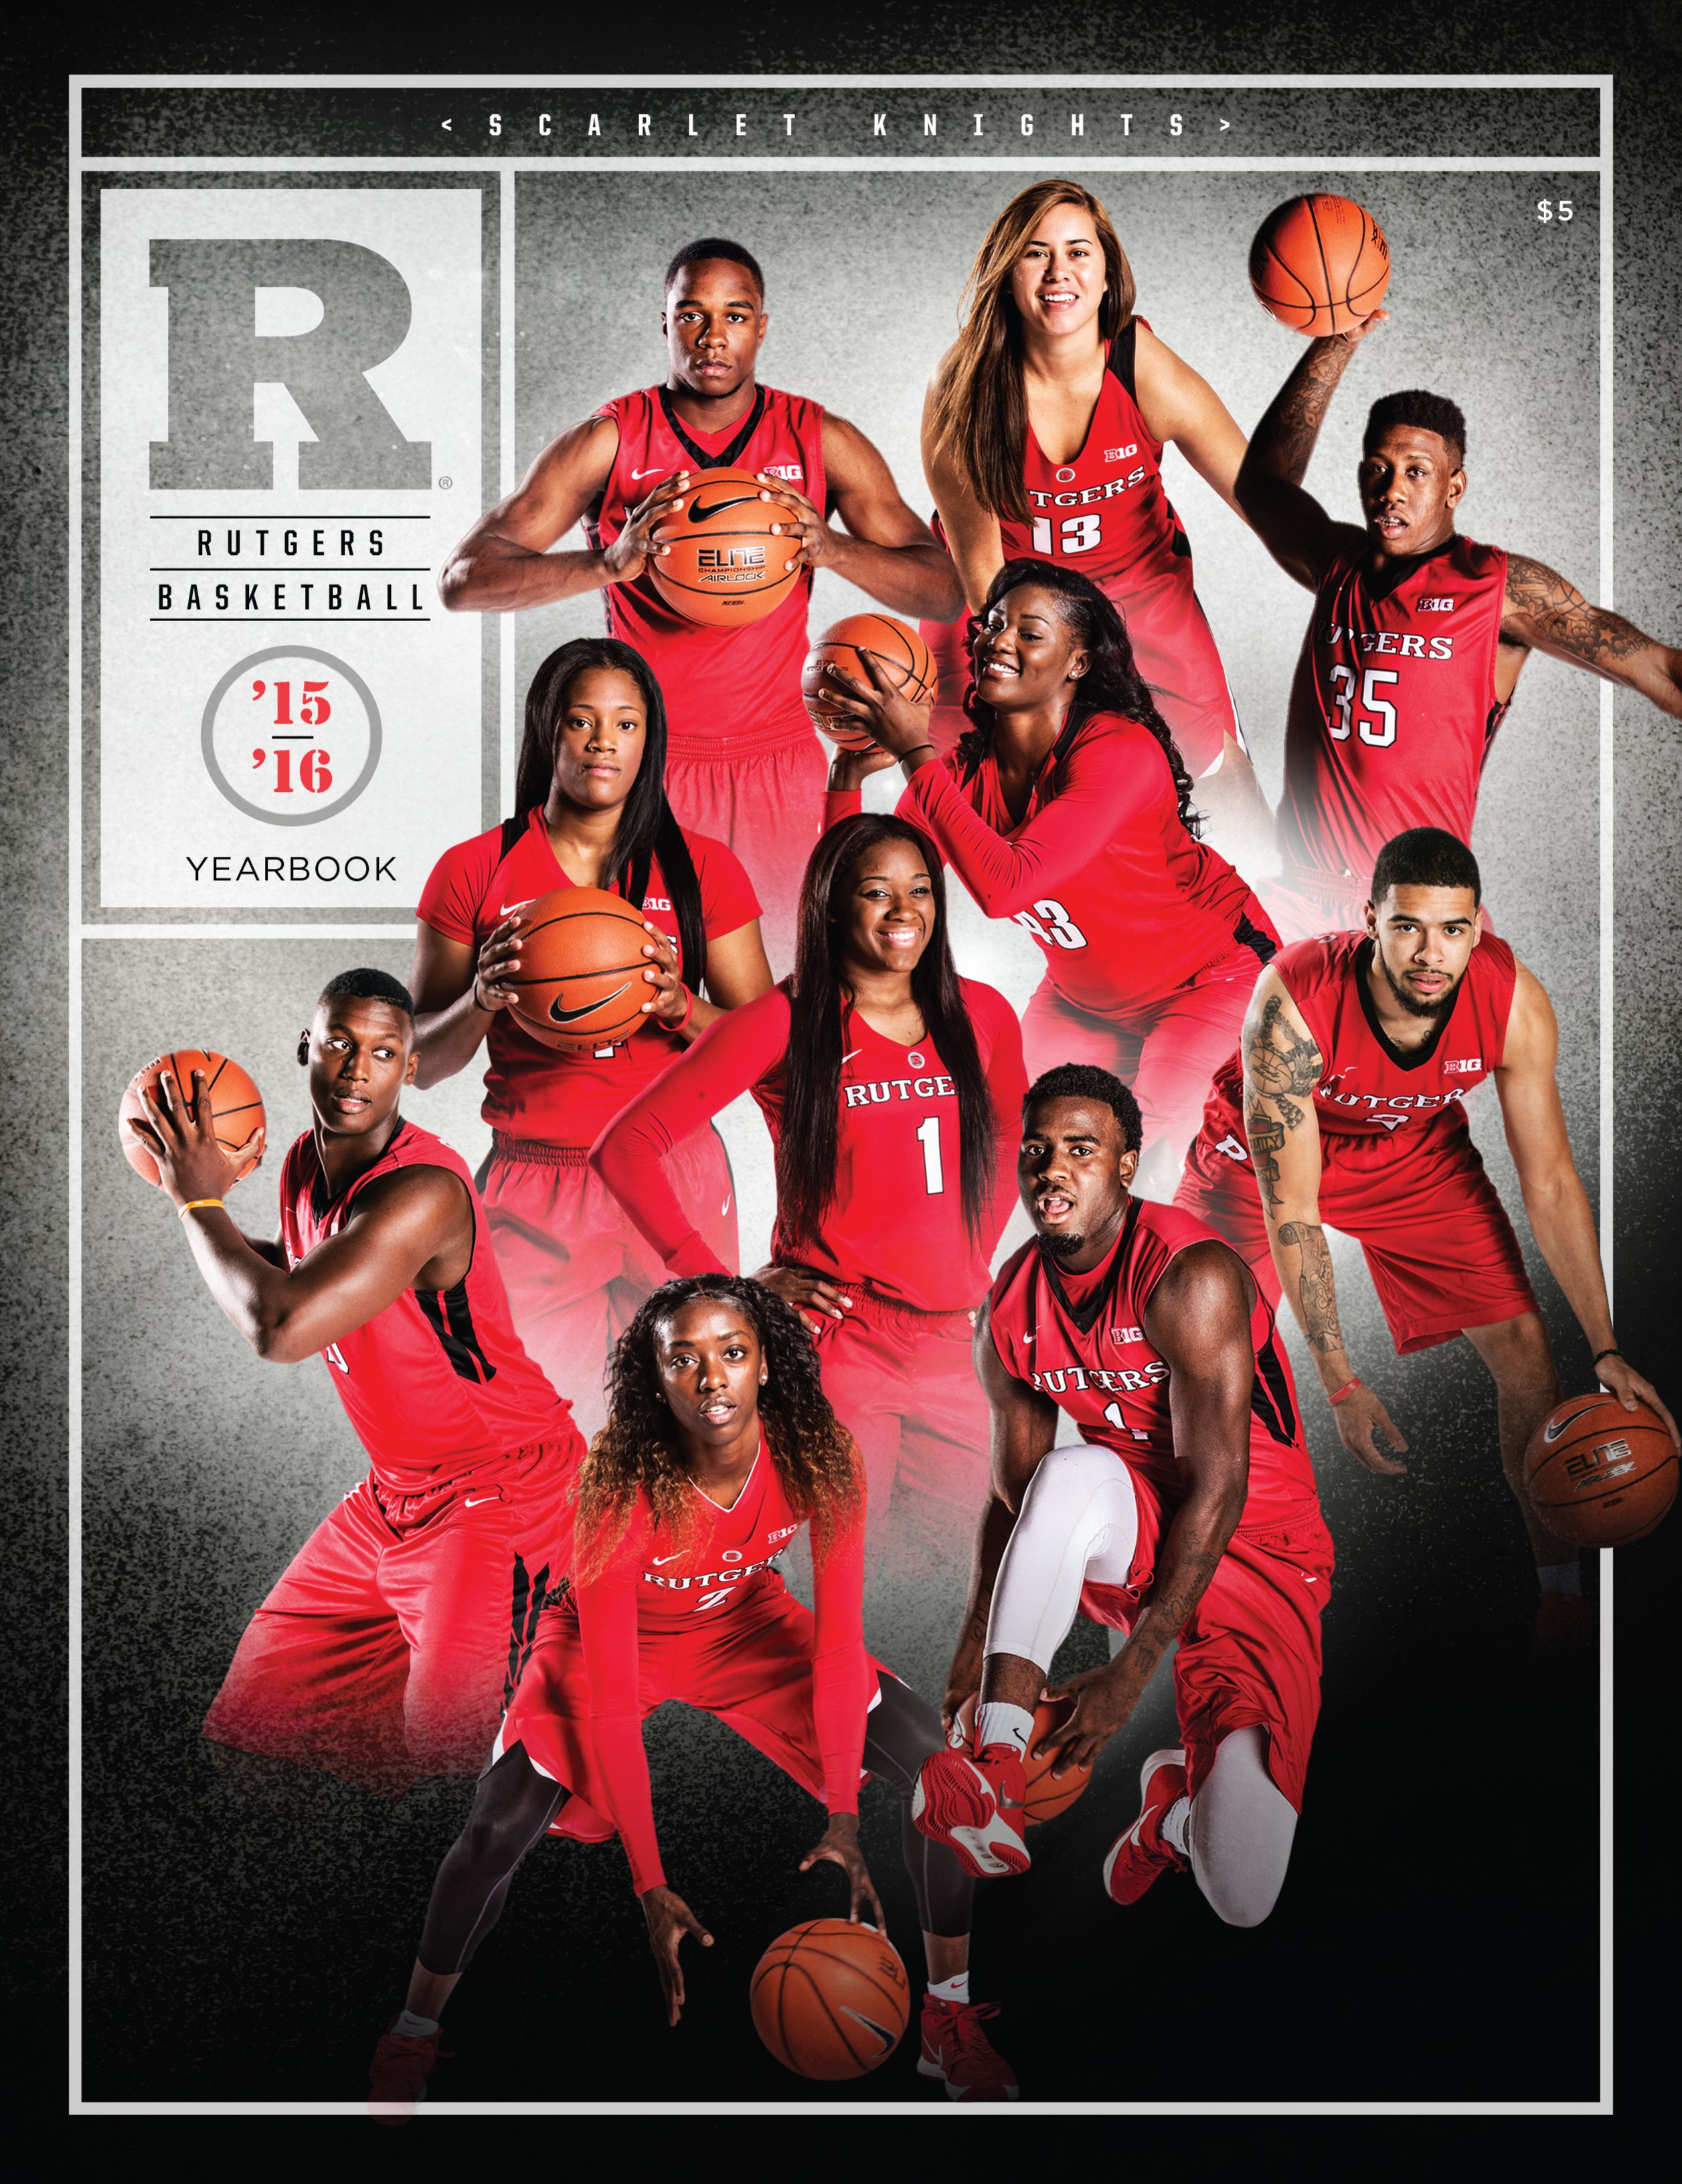 The 2015 16 Rutgers Scarlett Knights Men S And Women S Basketball Yearbook Rutgers Scarlet Knights Womens Basketball Yearbook